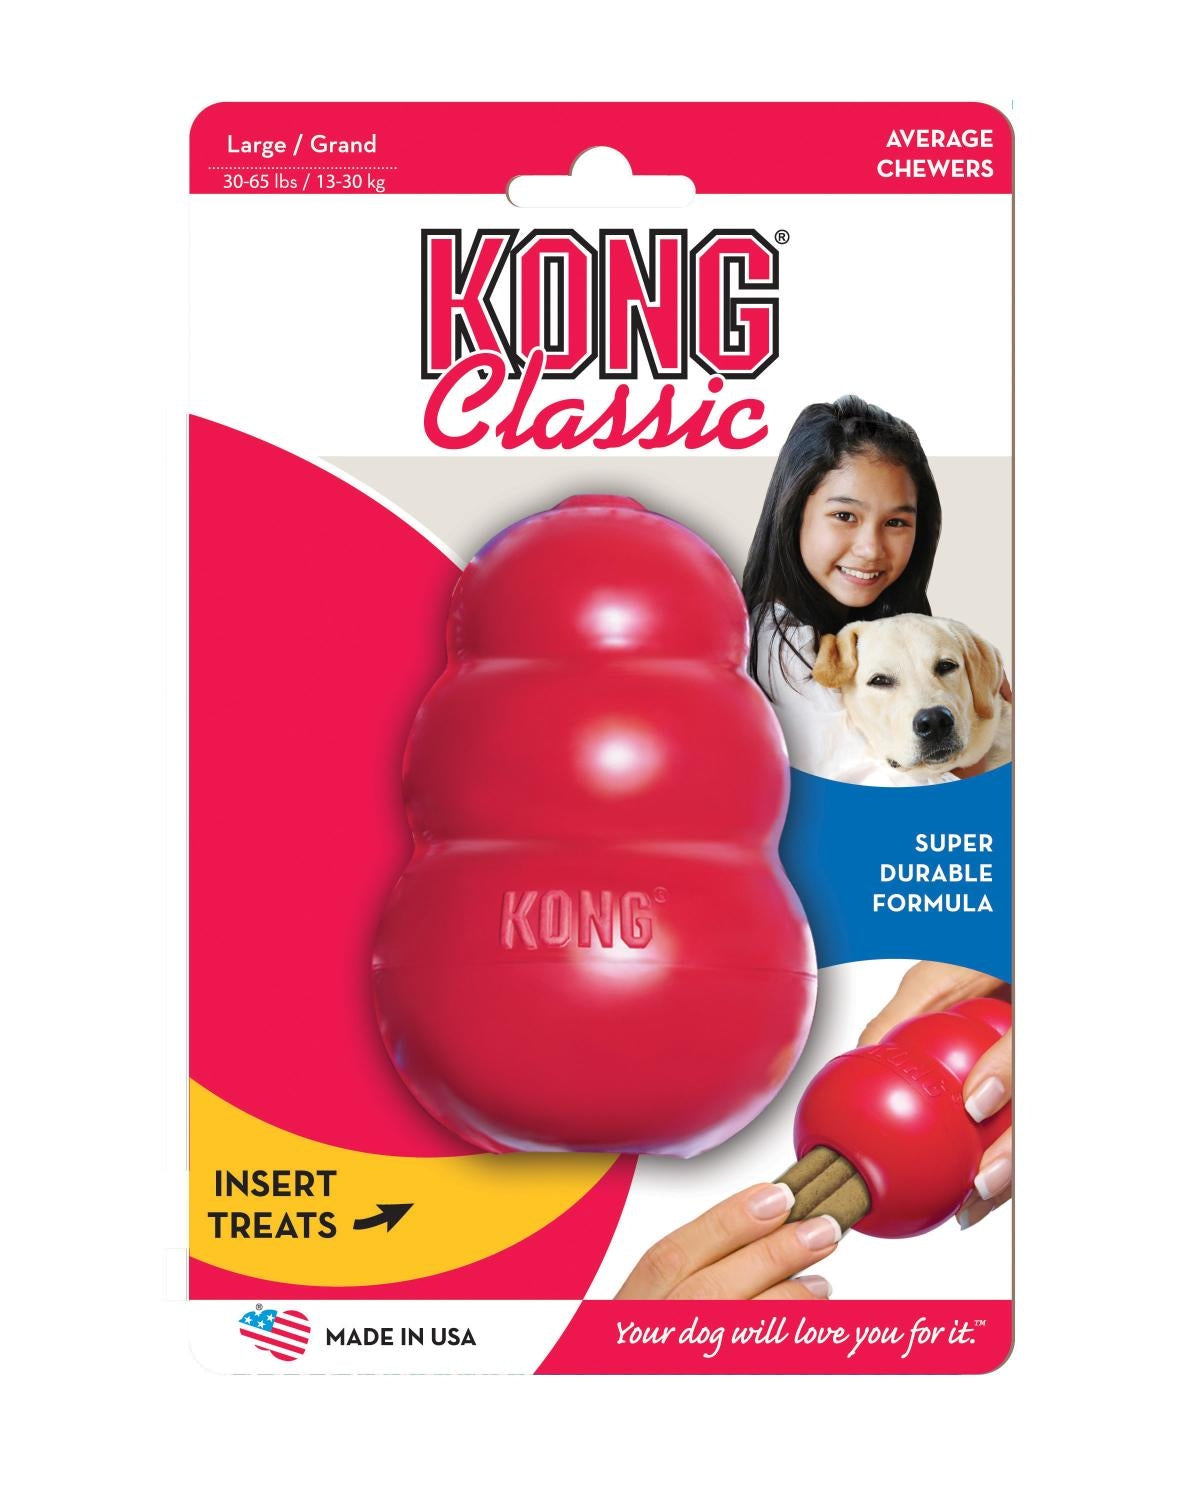 KONG Classic Large - Positive Dog Products